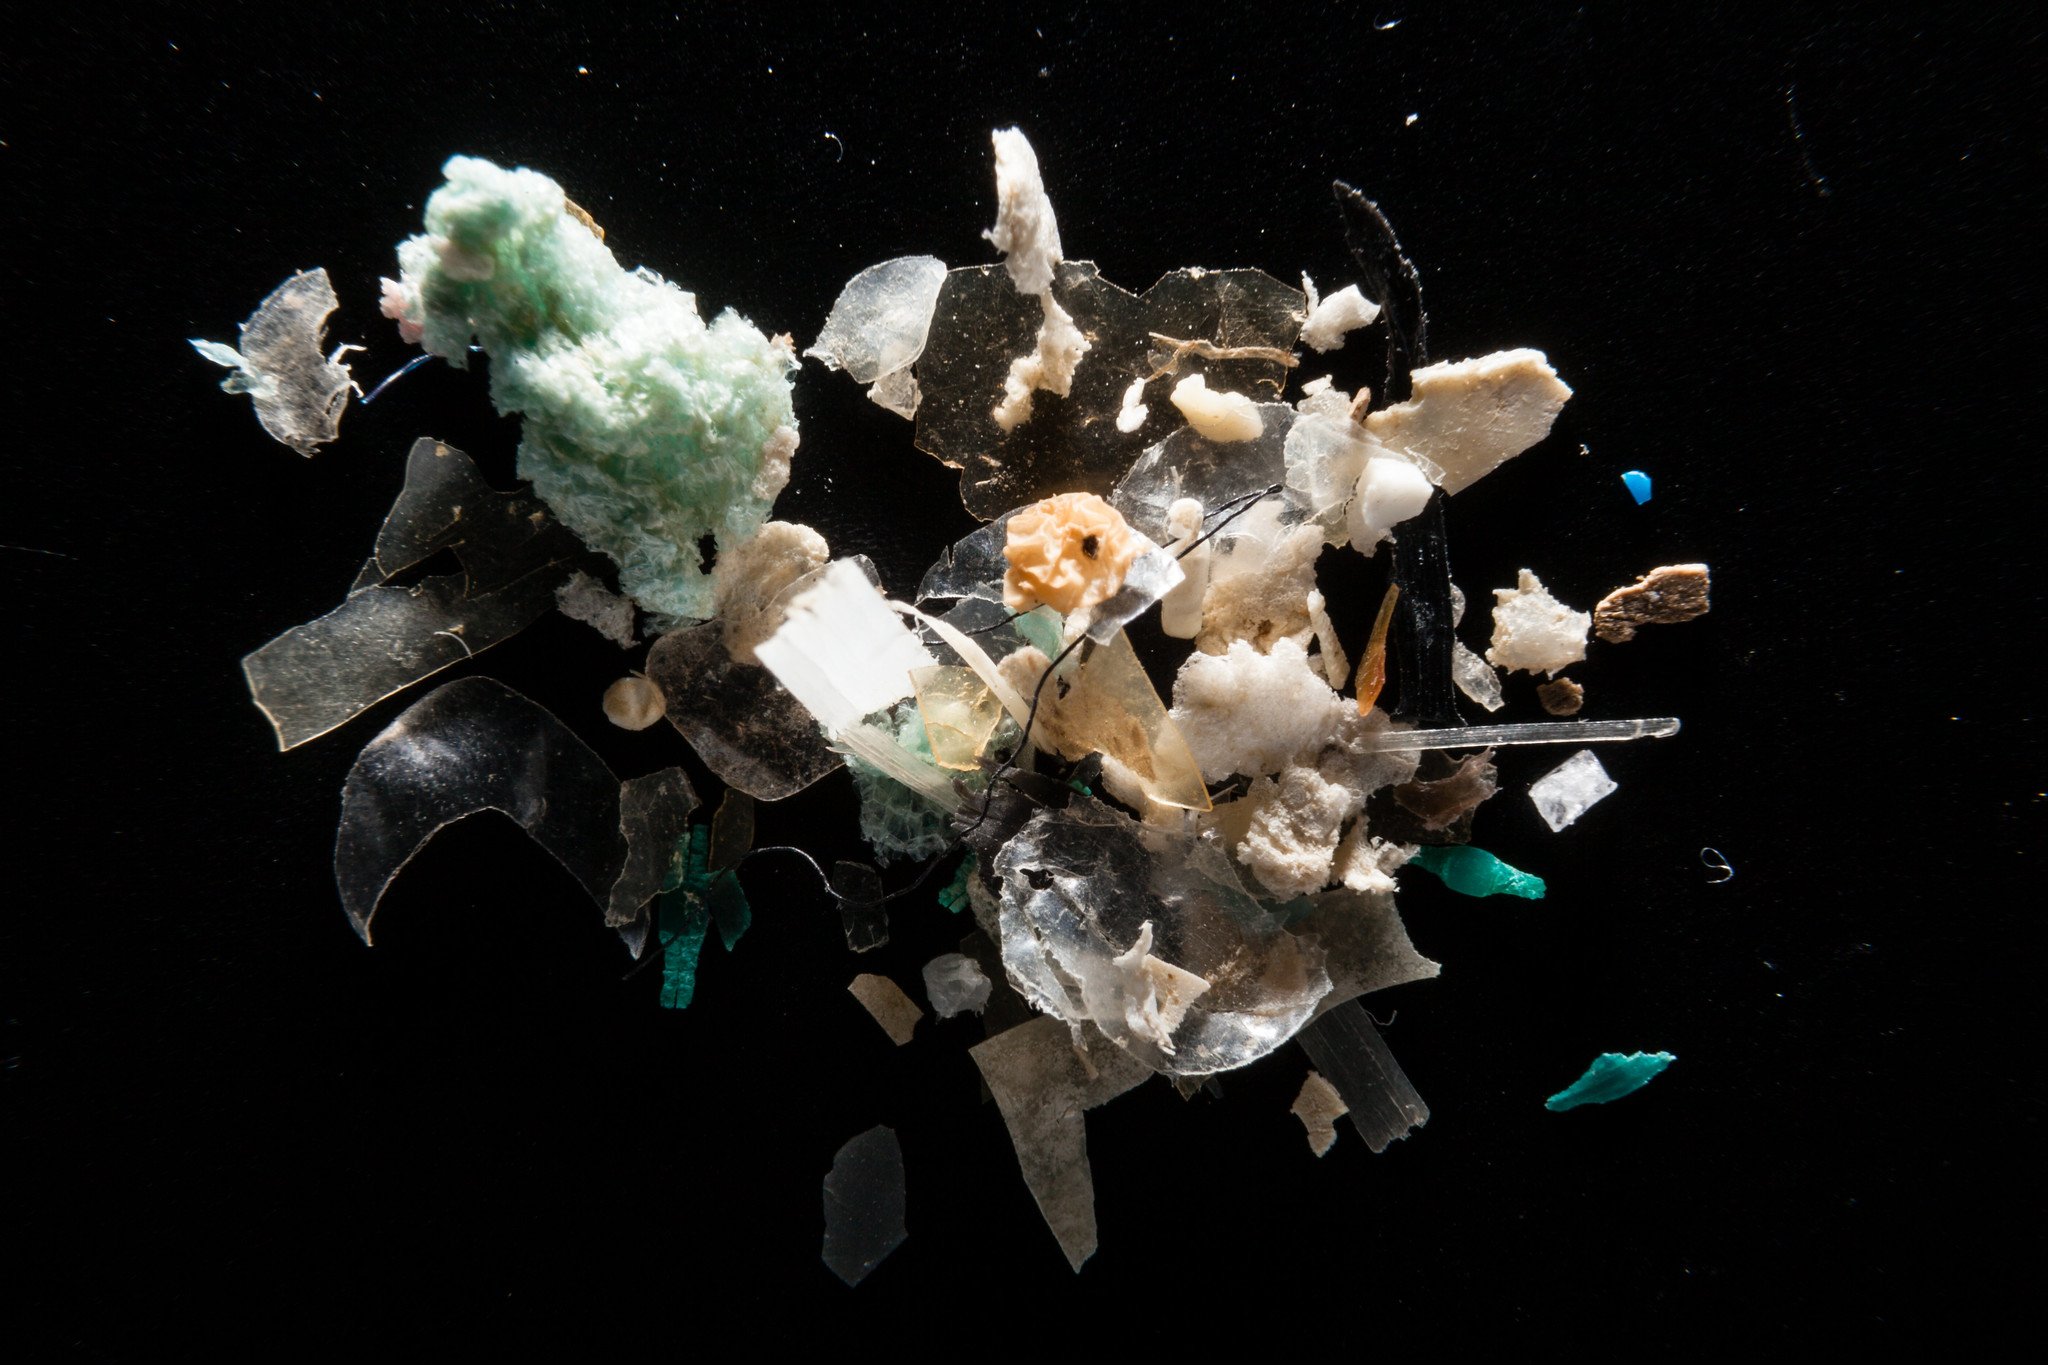 Let them eat plastic – Animals eating microplastic could choke the ocean